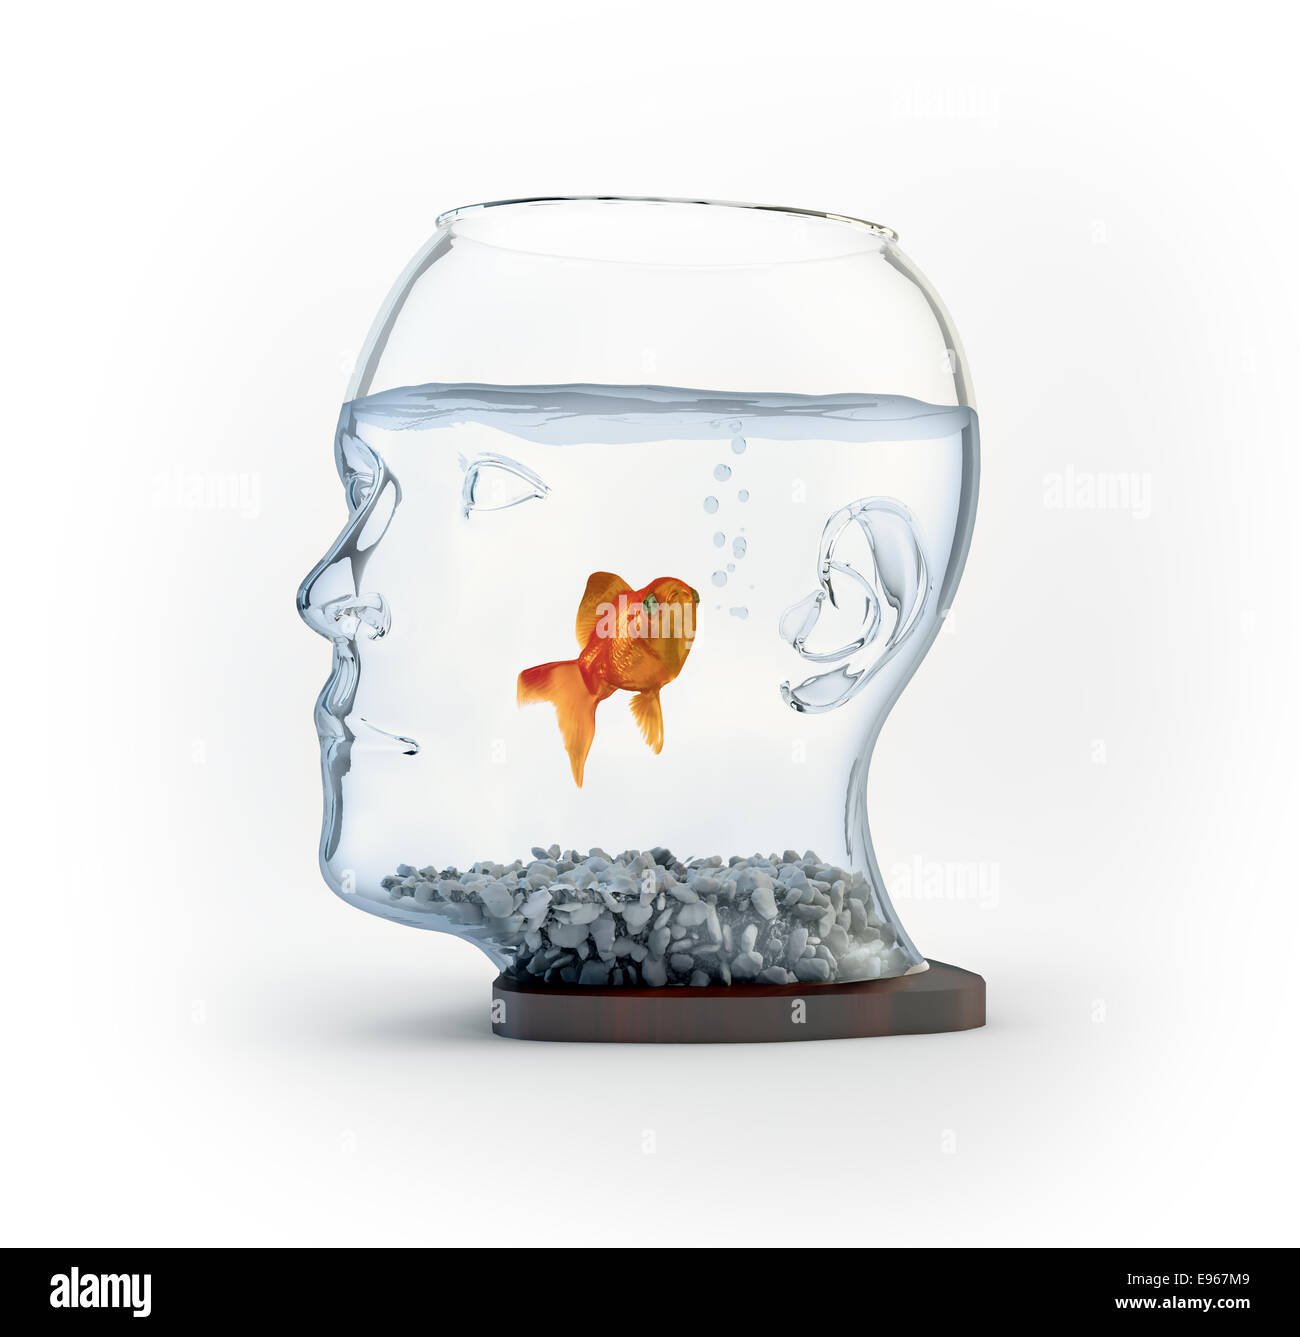 A fish bowl shaped like a head - Stock Image